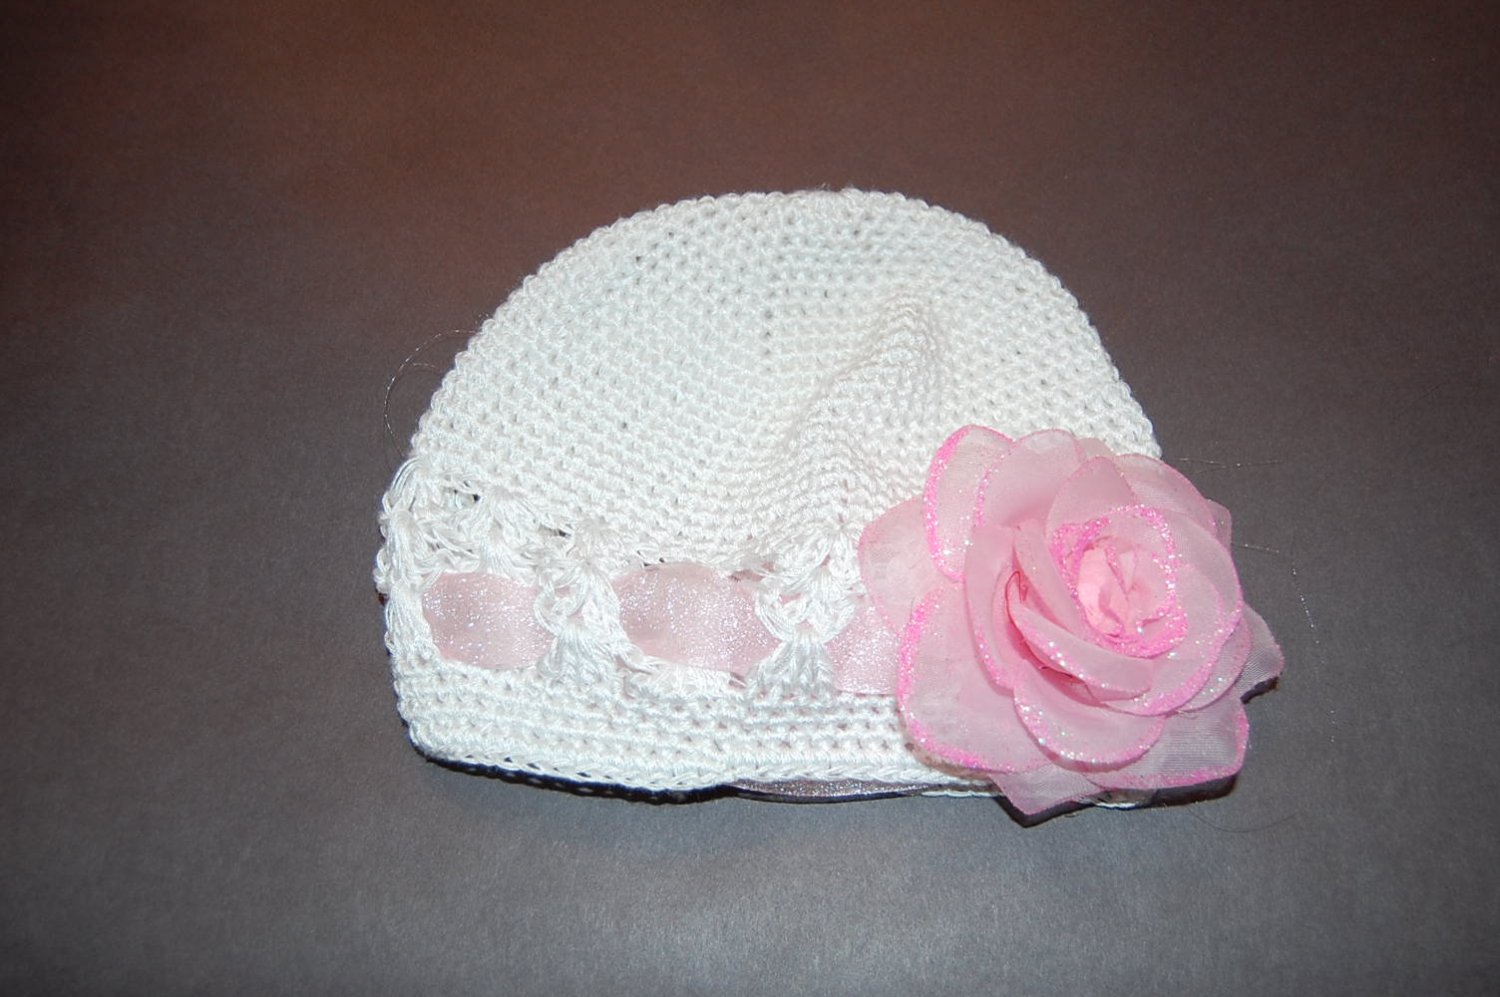 Crocheted Kufi Hat,White, Pink Tulle Ribbon Accent, Pink Glitter Rose . Sizes NB, SM, MED, LGE